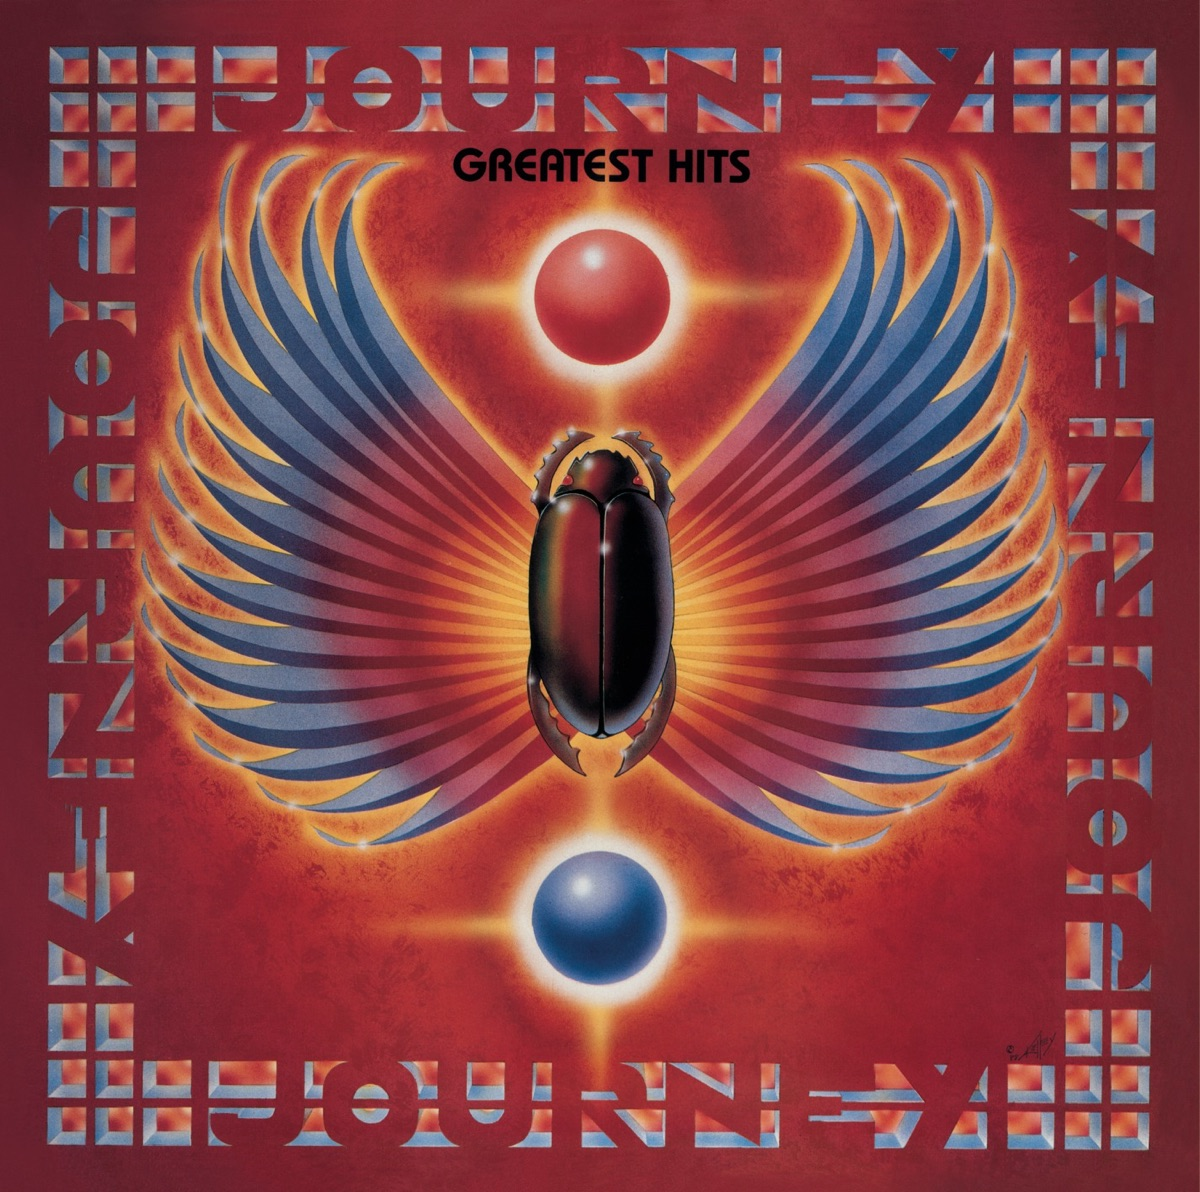 Greatest Hits Journey CD cover